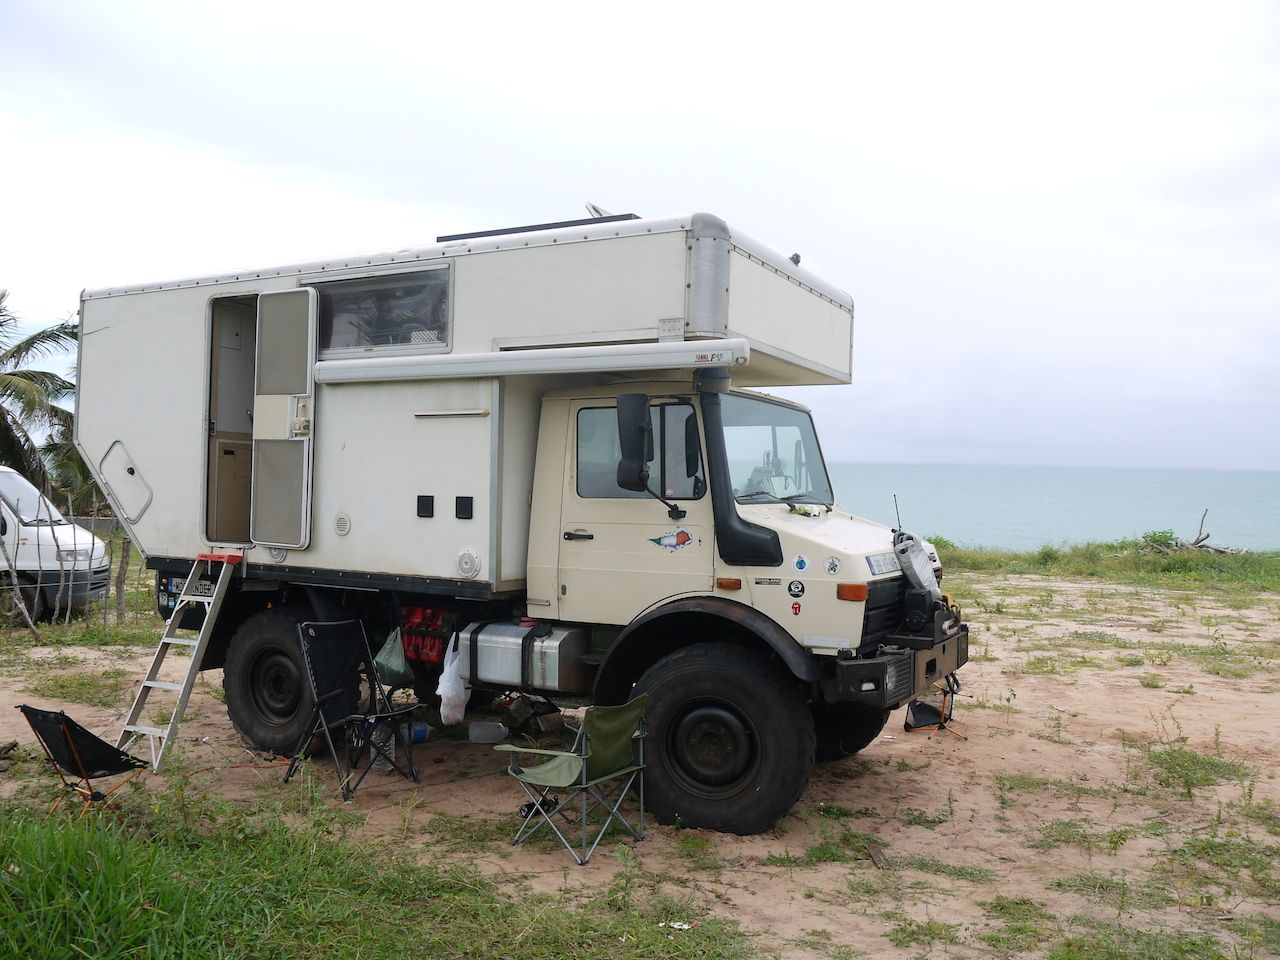 Unimog Camper Look Slike A Box Truck Uhaul Back Shoved On A Unimog And Cut For Departure